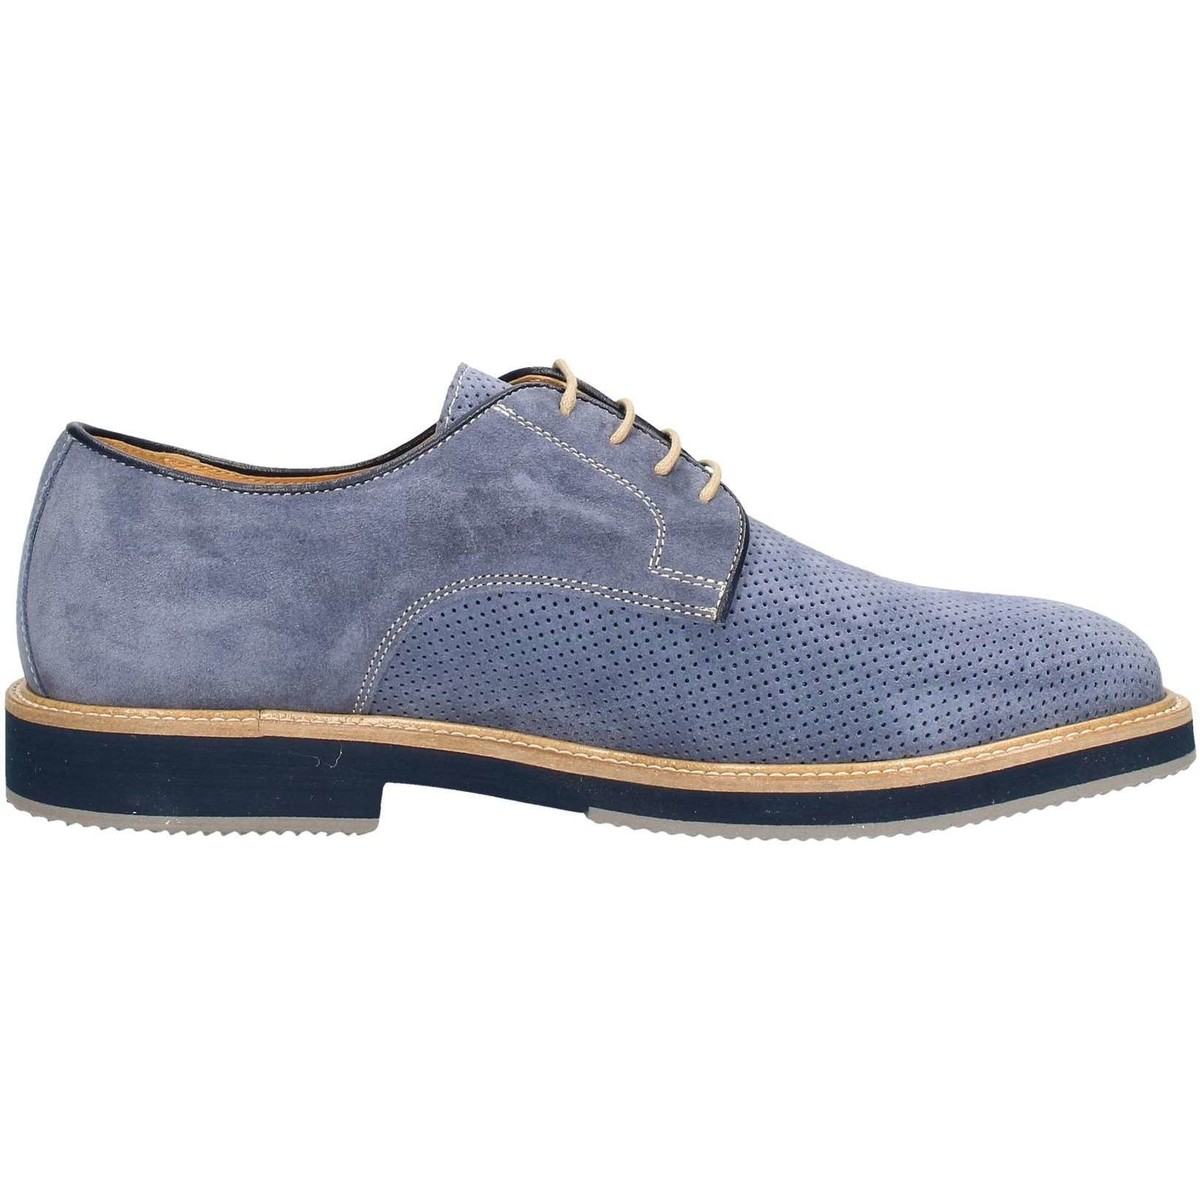 Hudson 901 Lace up shoes Mann Blau Blau - Schuhe Derby-Schuhe Herren 97,00 €